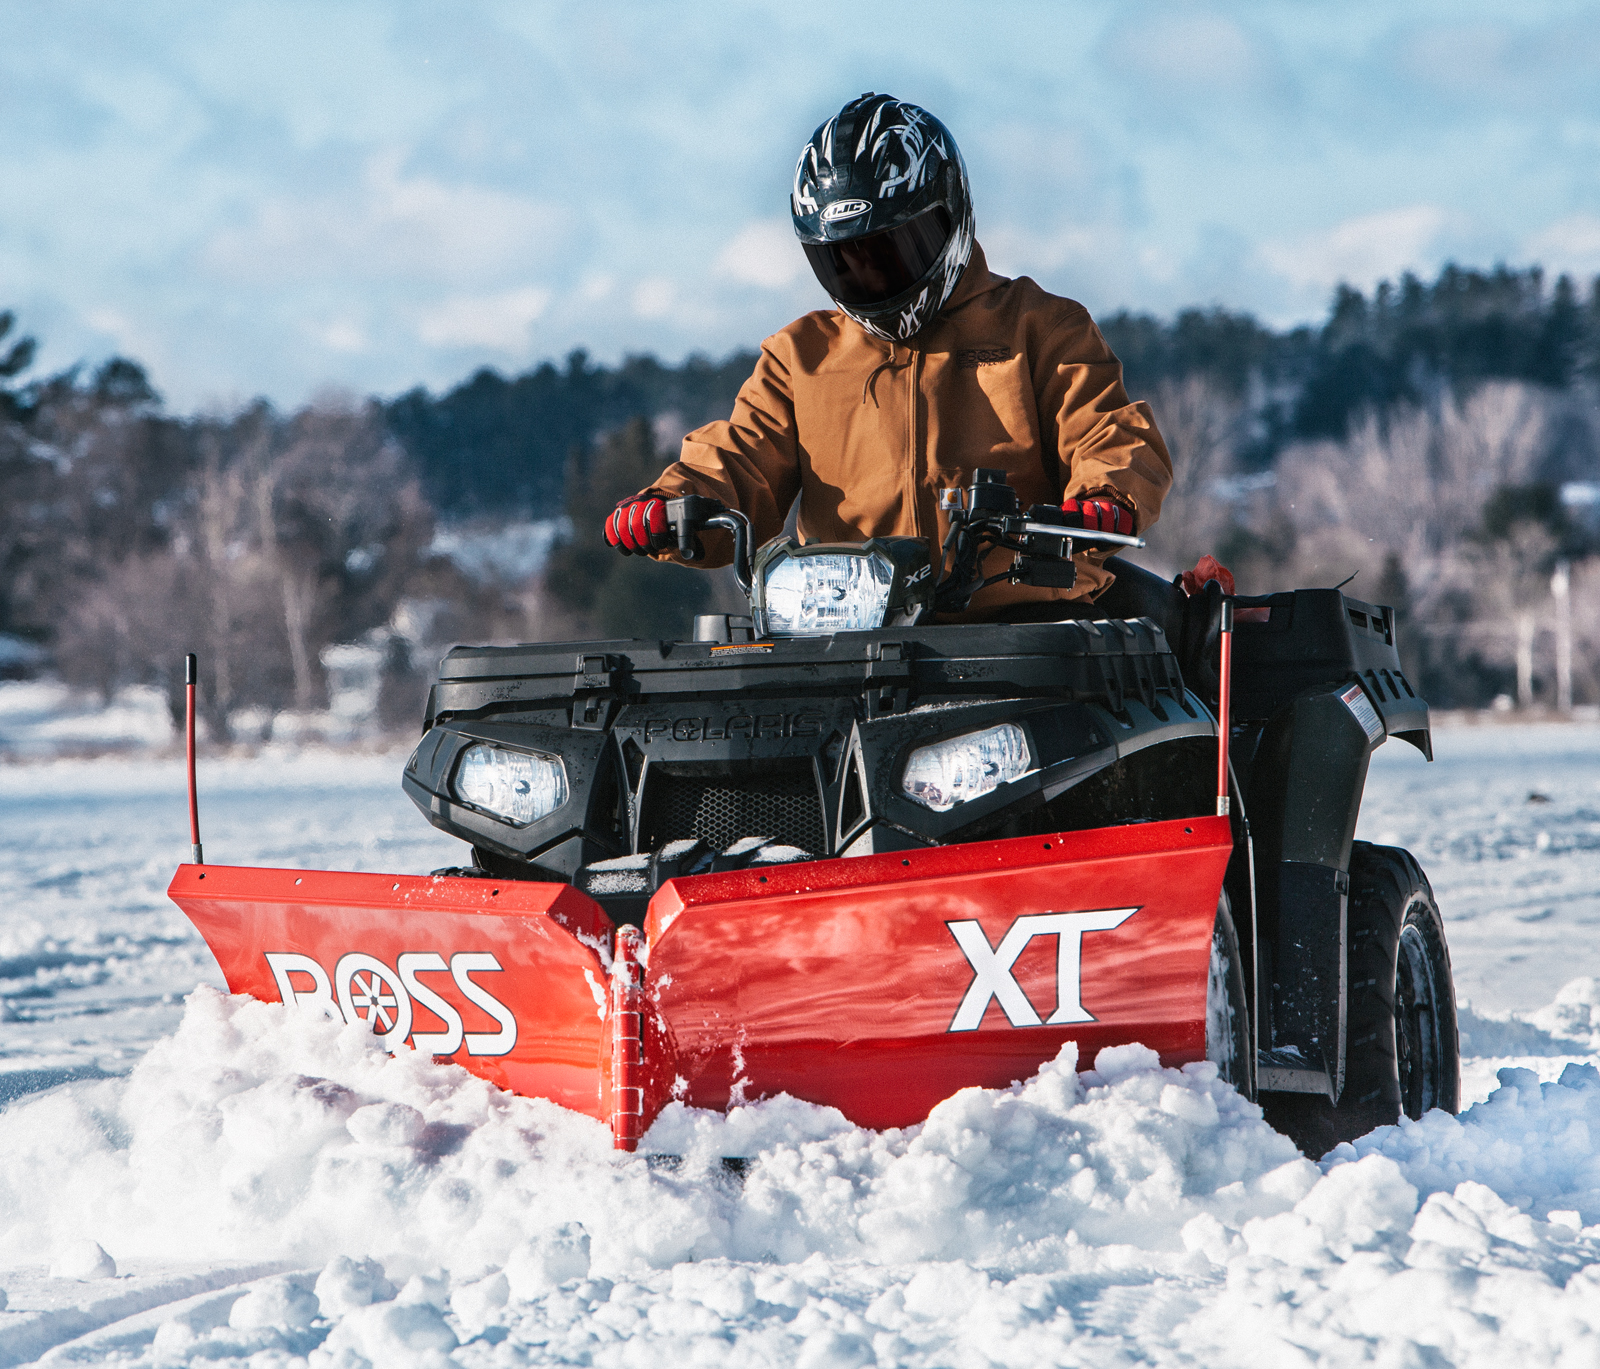 boss snowplow | products, Wiring diagram